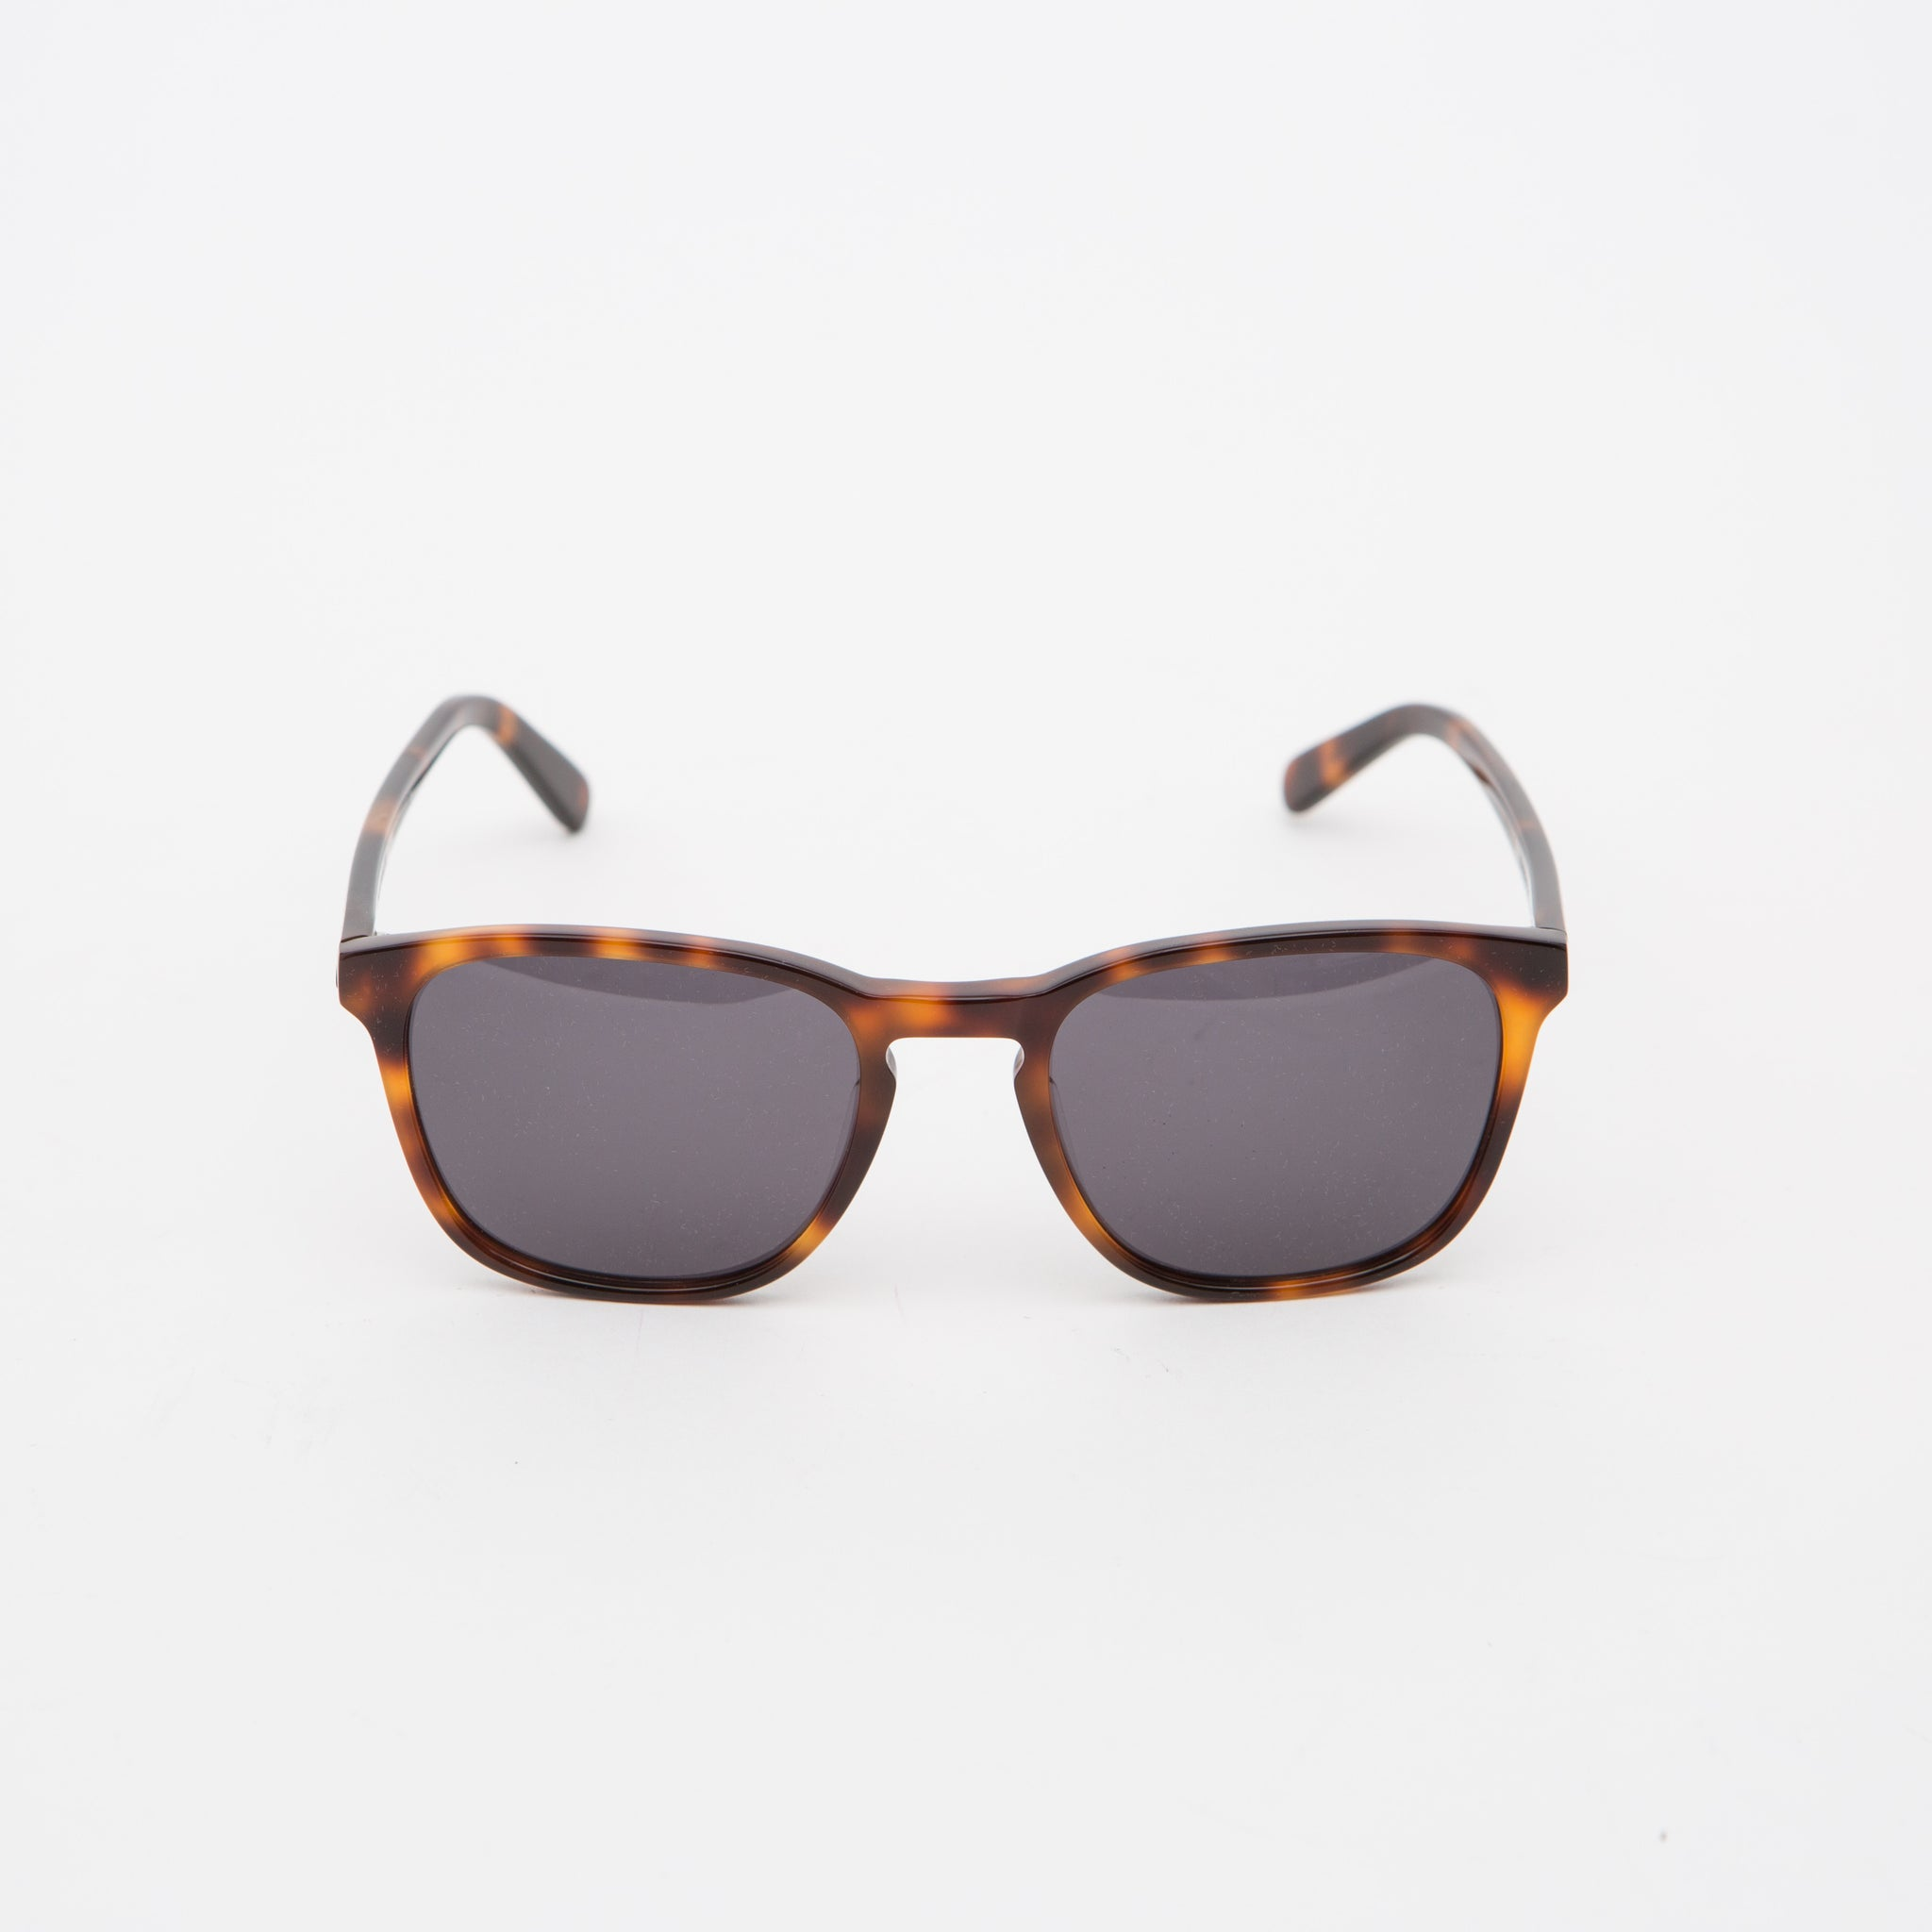 FINLAY London Bowery Sunglasses in Dark Tortoise